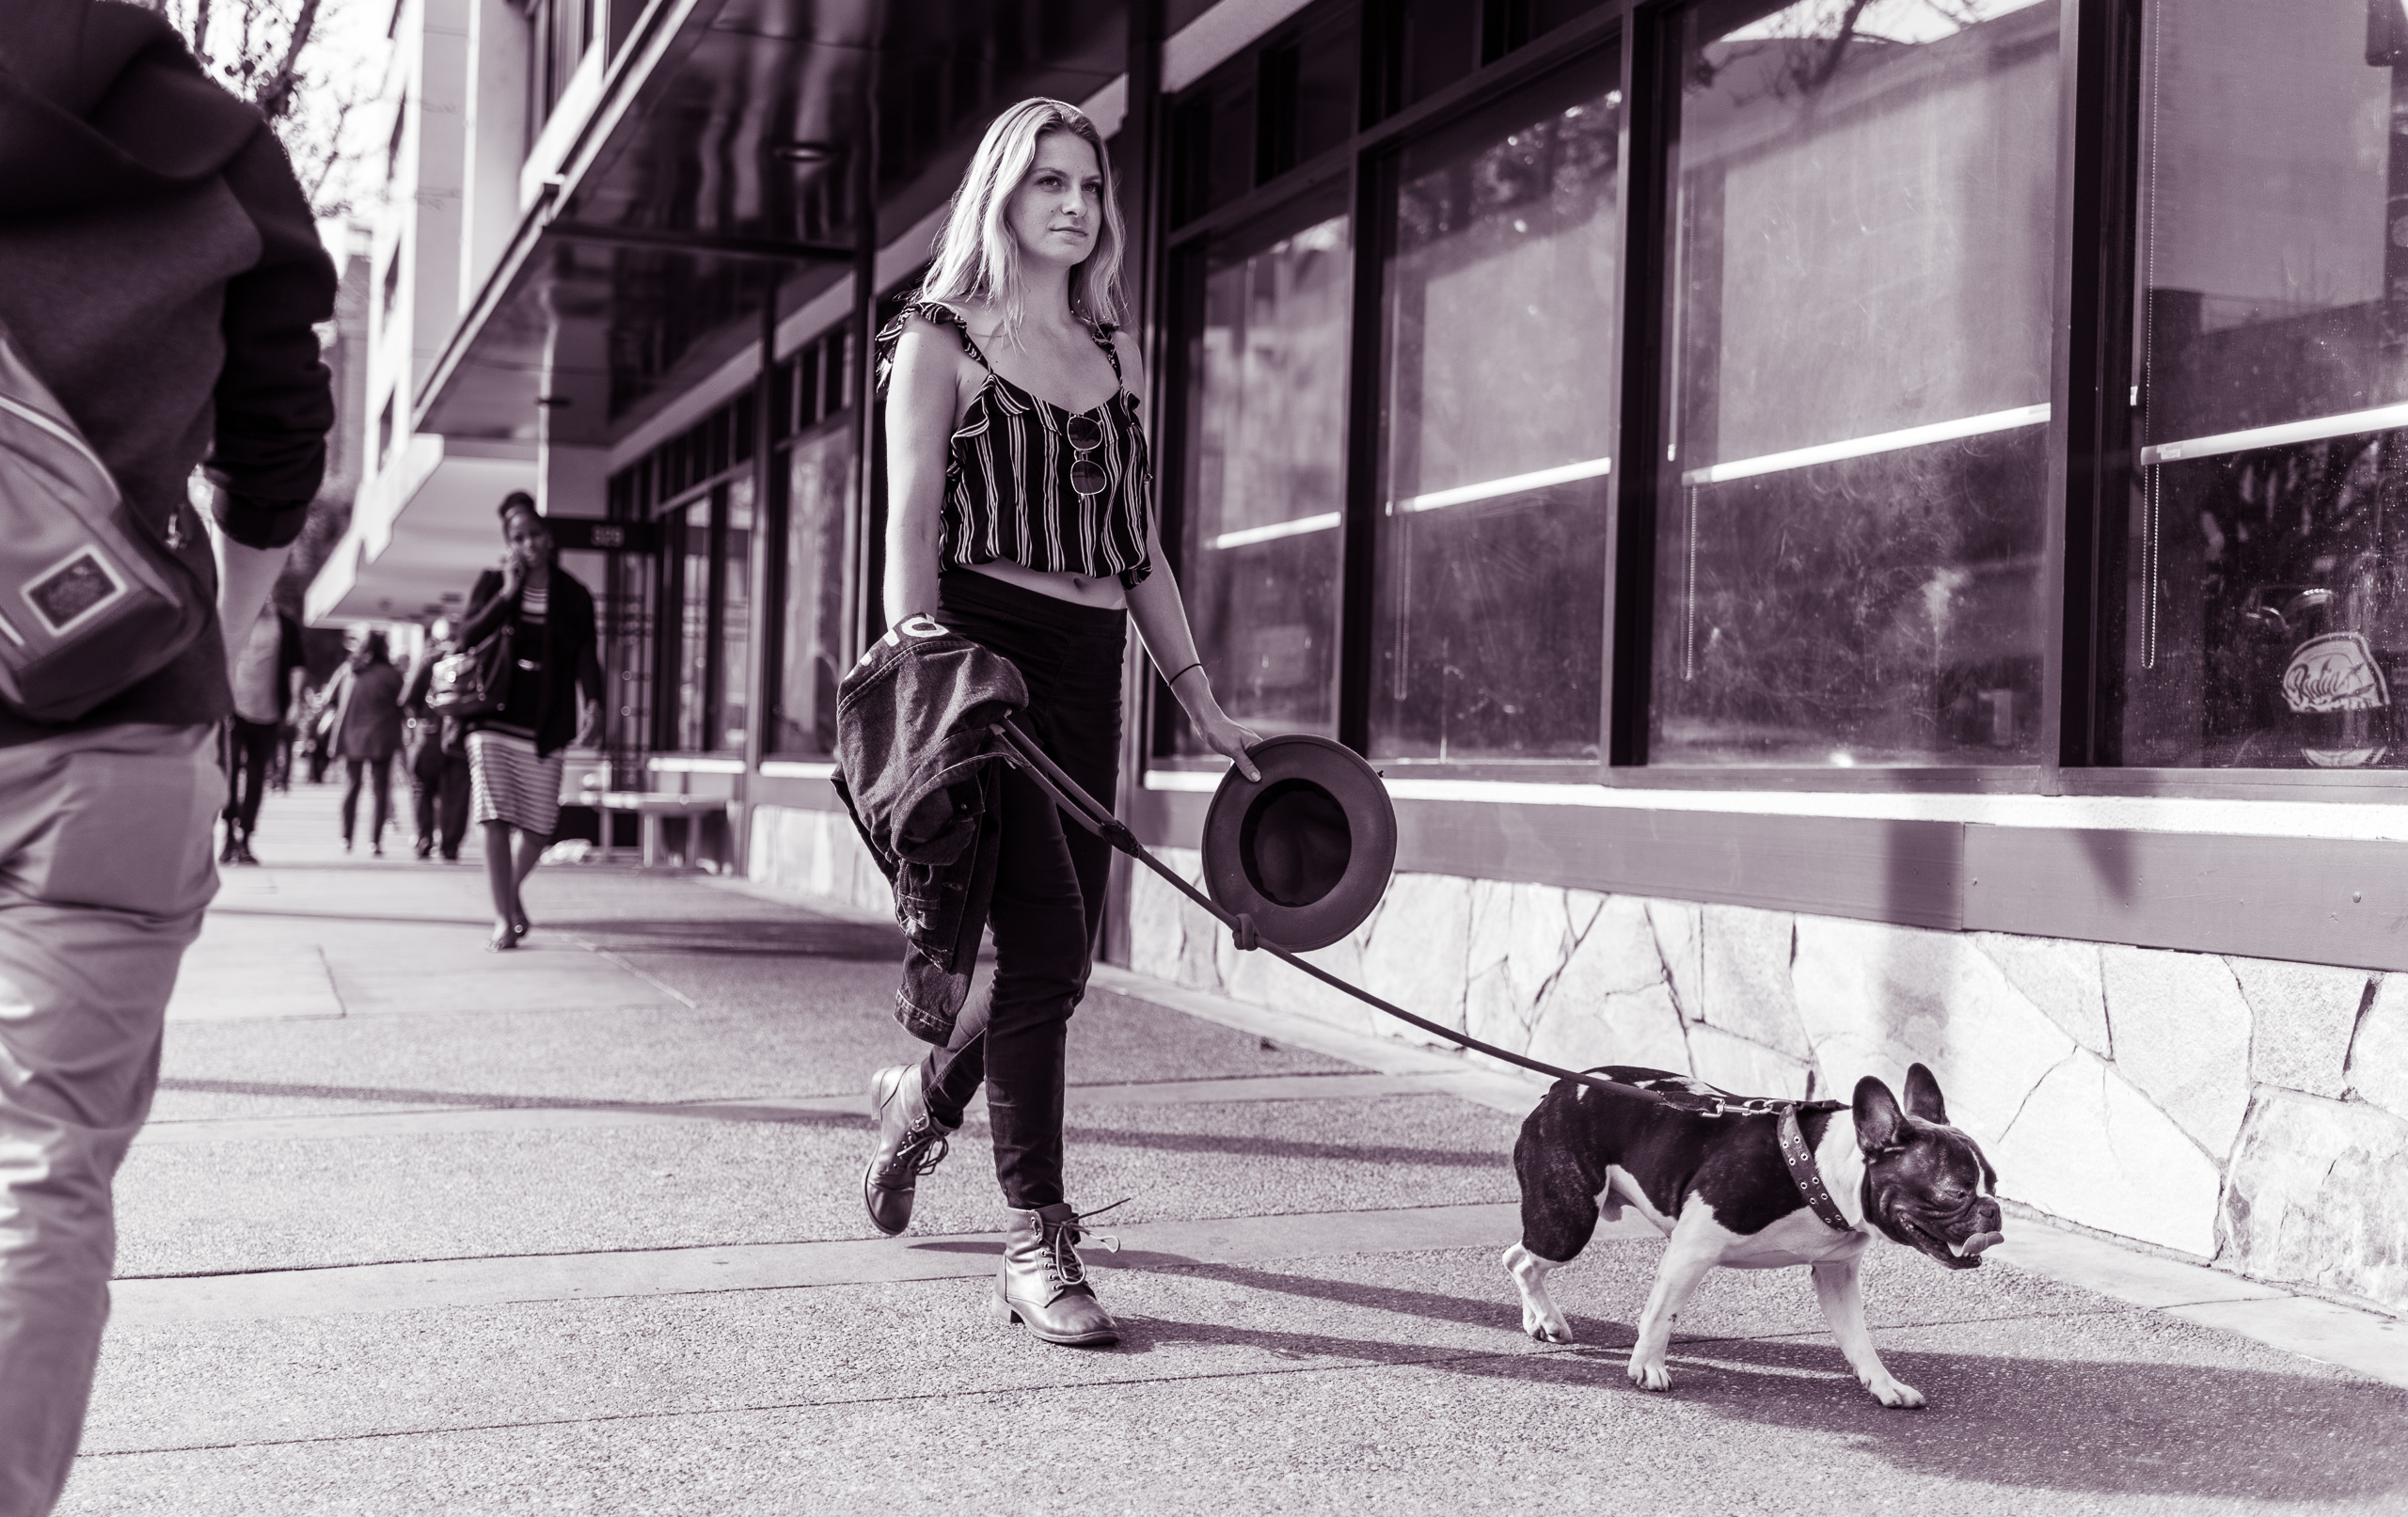 a woman, a dog, a leash. Walking down the street in Little Tokyo, Los Angeles, California